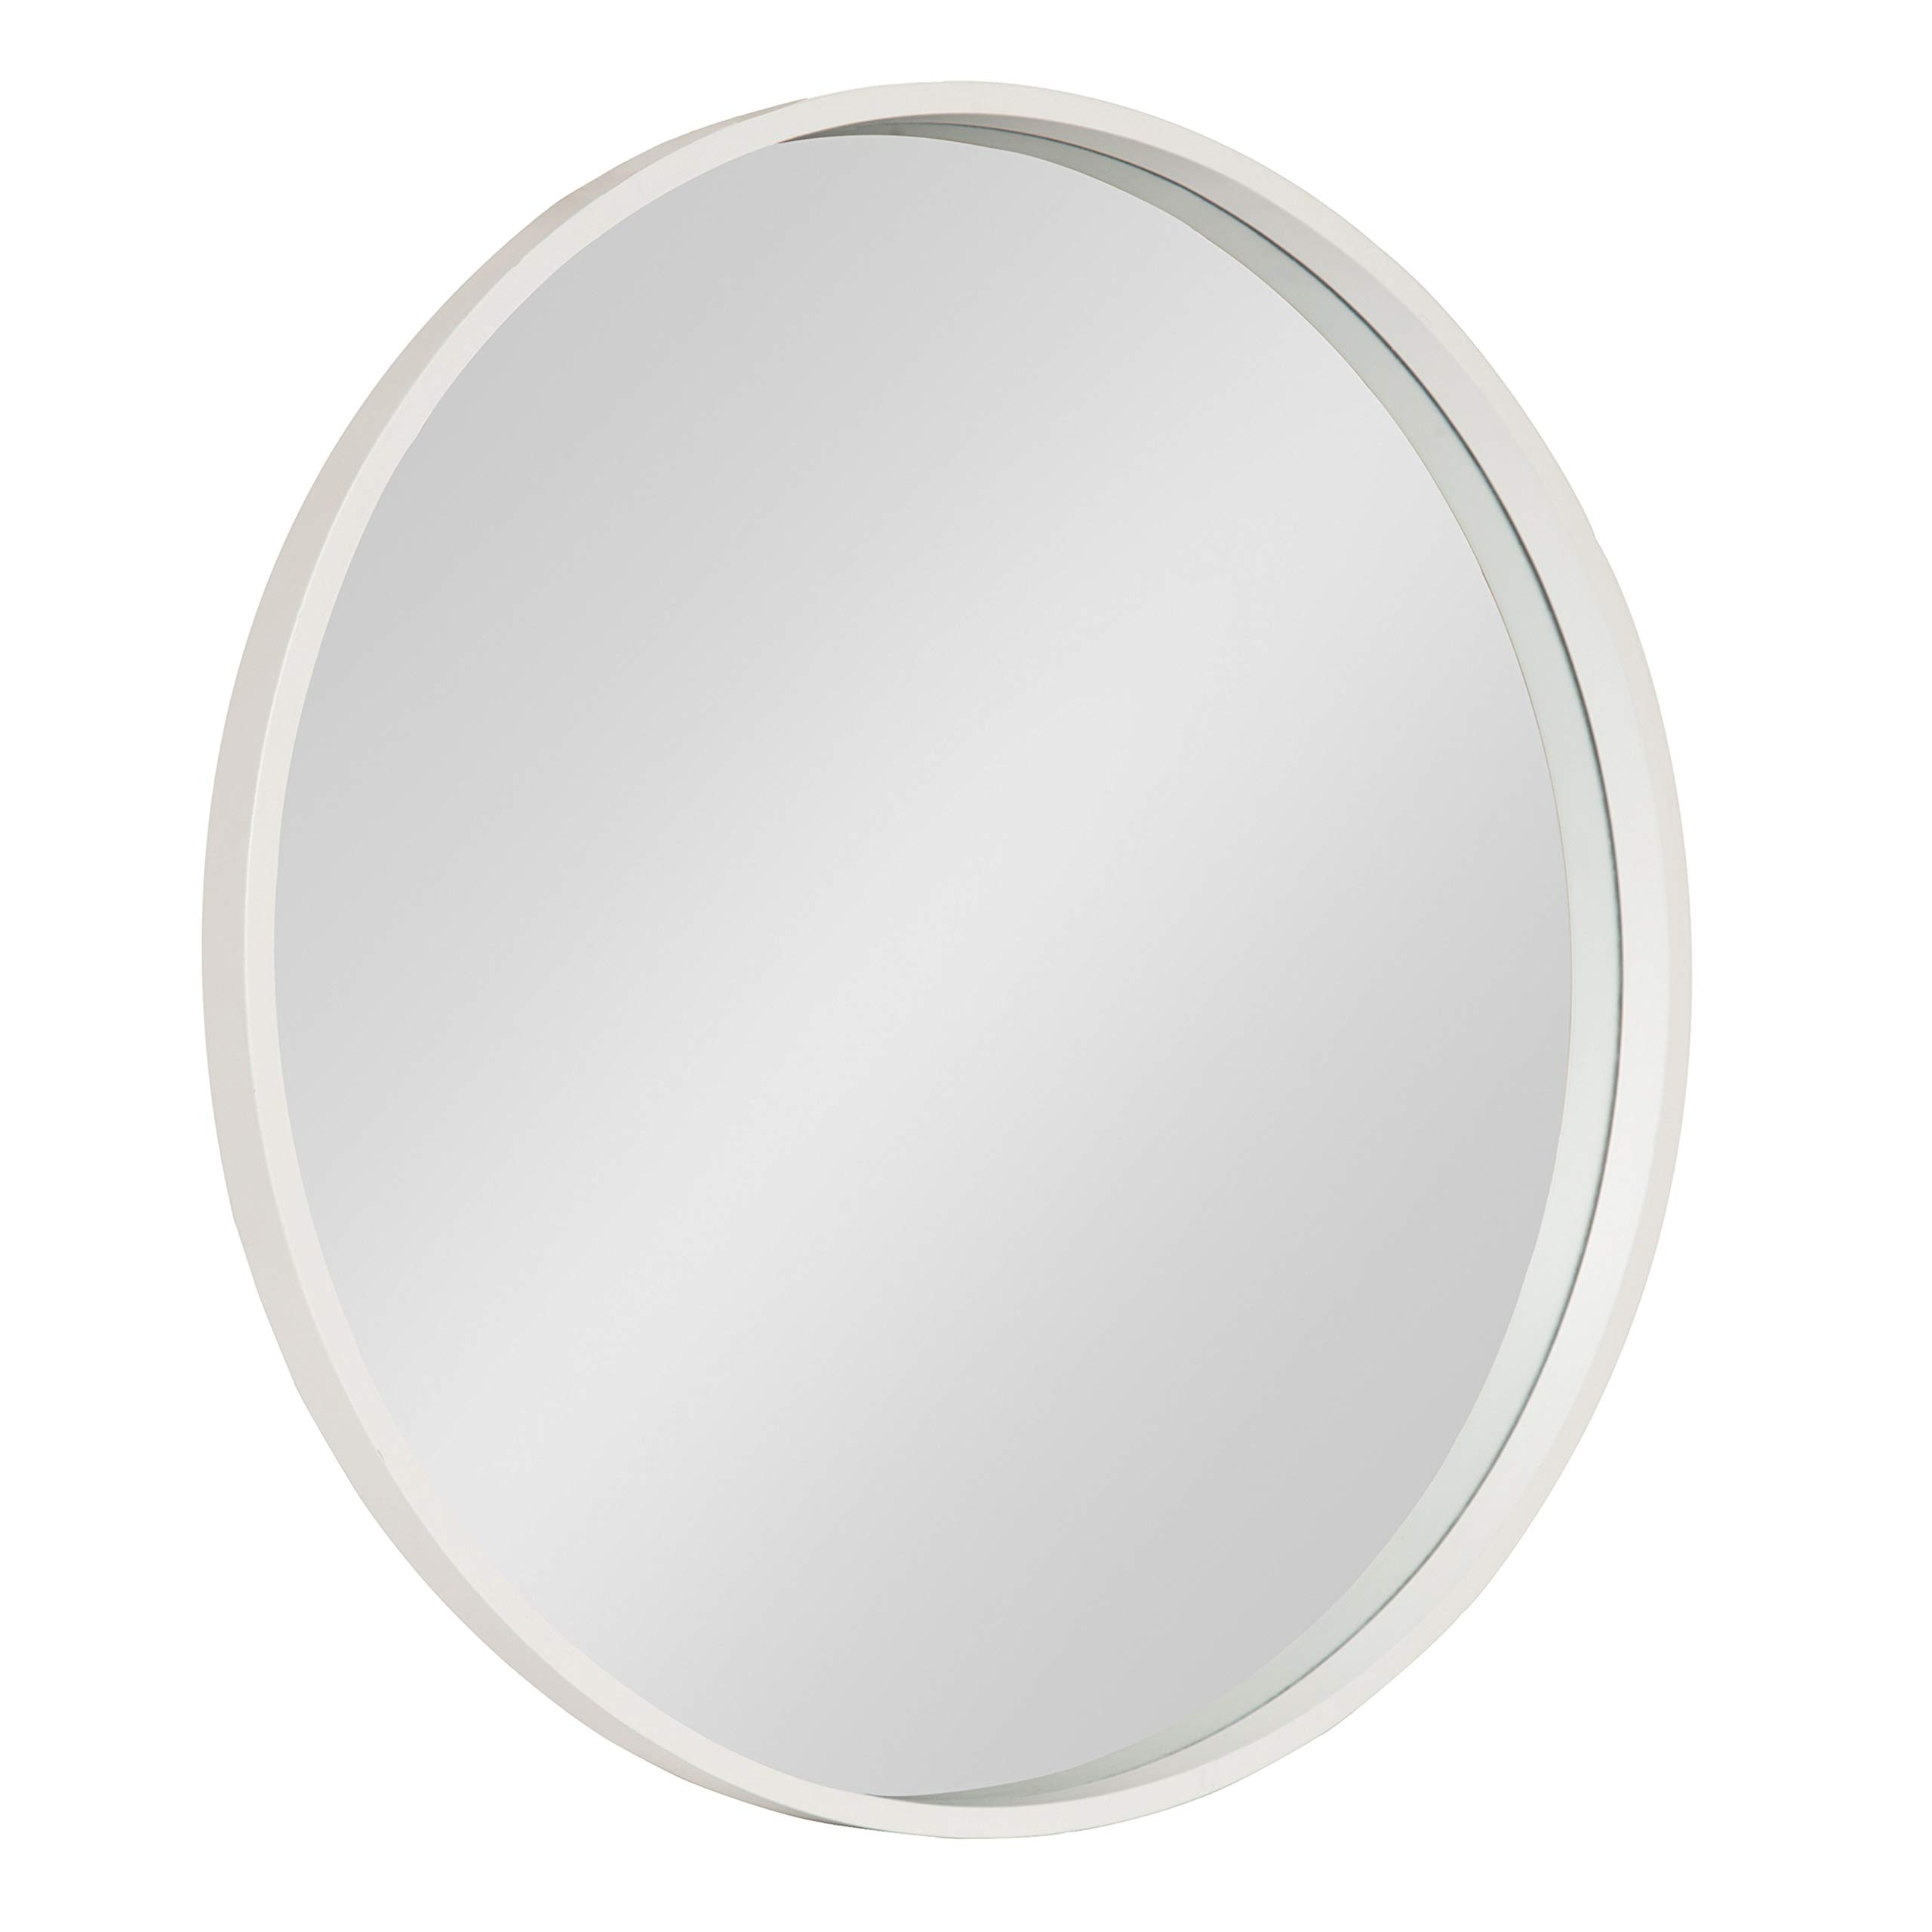 Kate and Laurel Travis Round Wood Accent Wall Mirror, 25.6'' Diameter, White